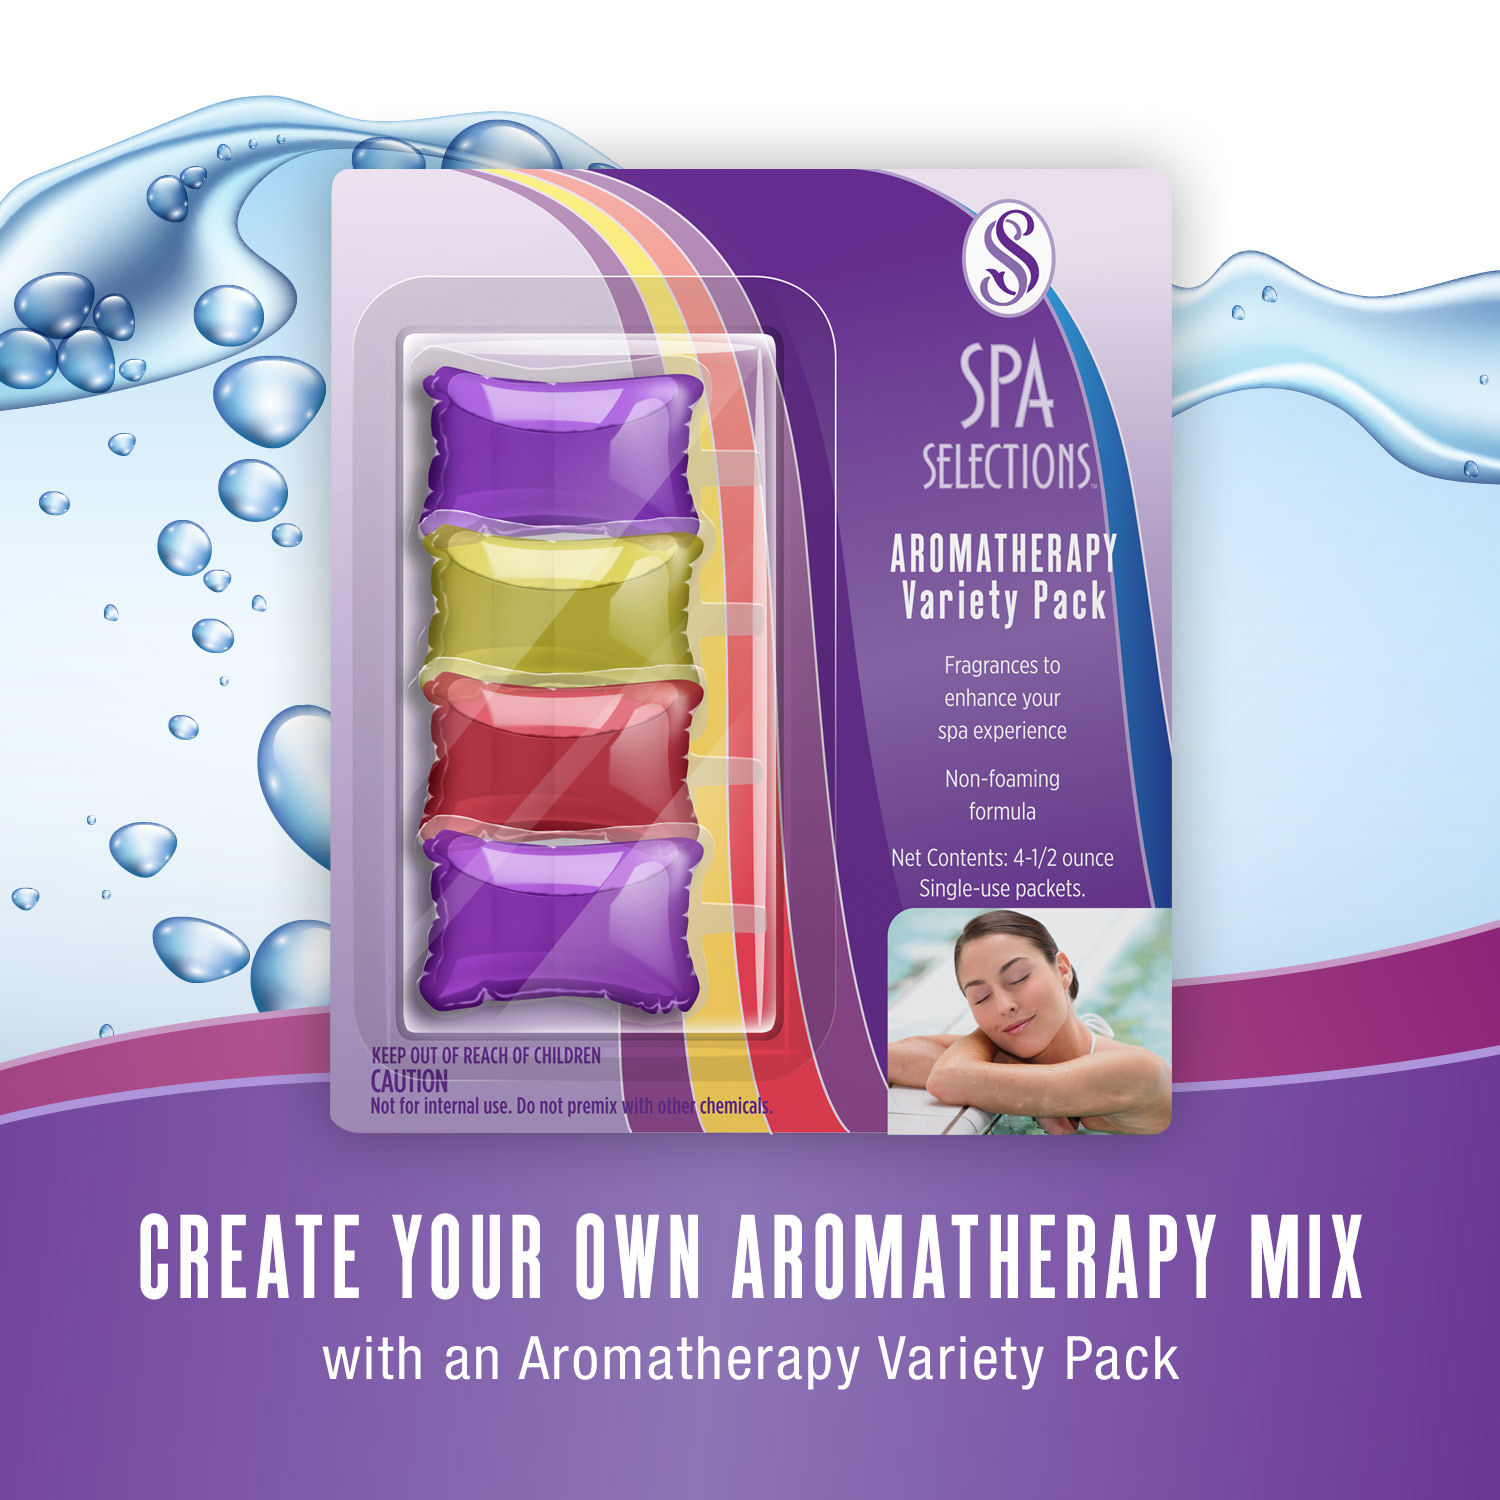 Spa Selections aromatherapy variety pack product packaging. Four fragrances included.